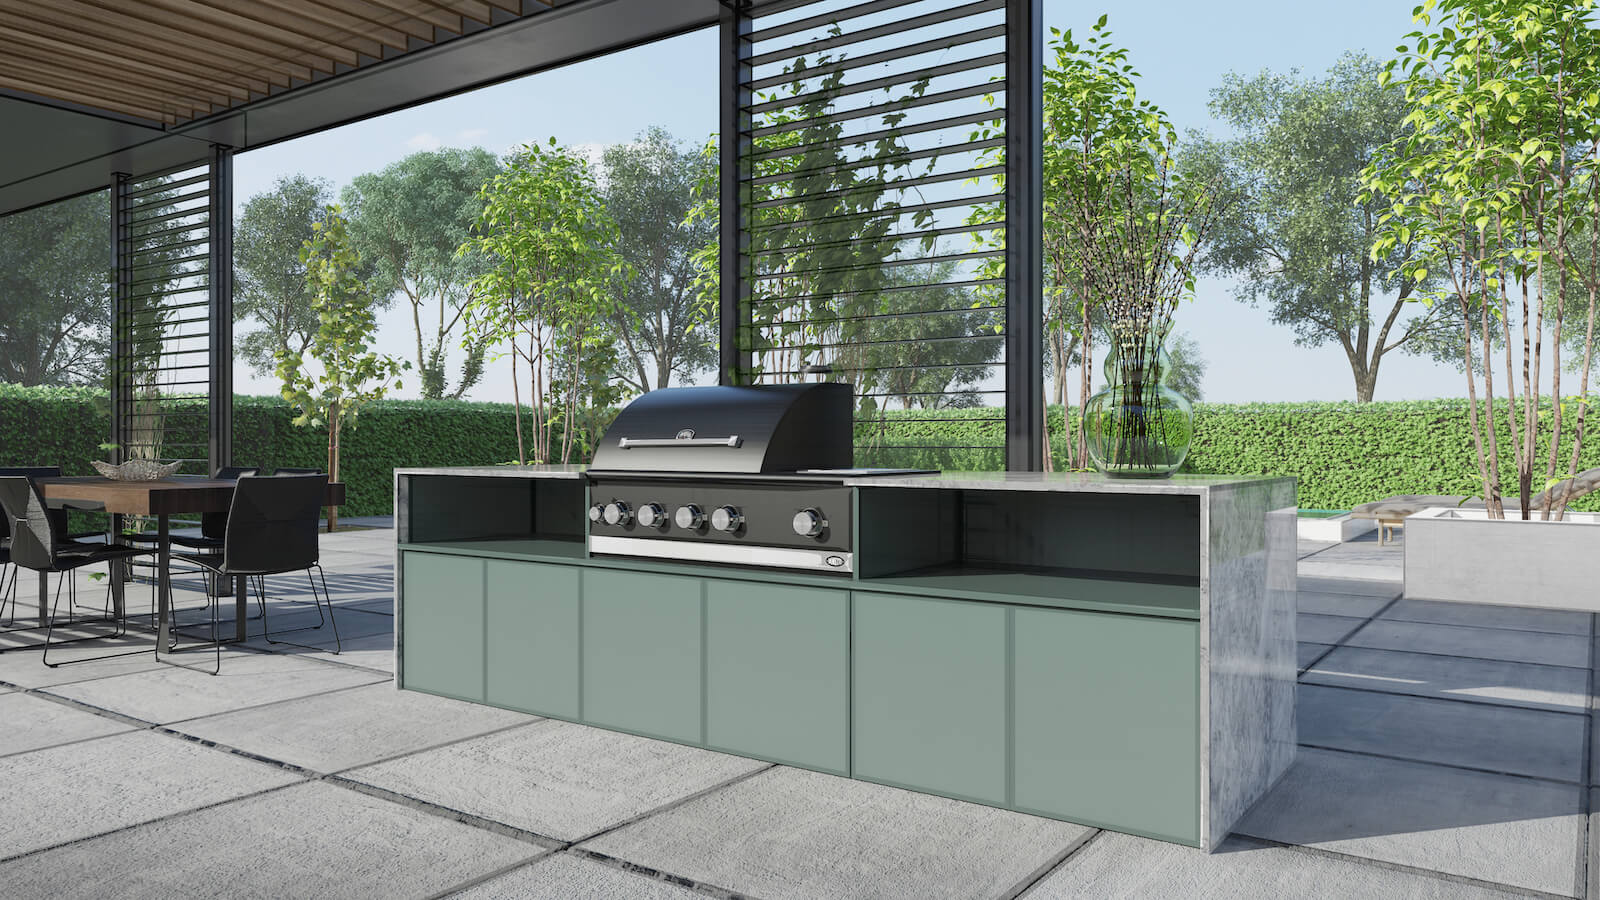 Opstelling COOXS buitenkeuken met Boretti barbecue